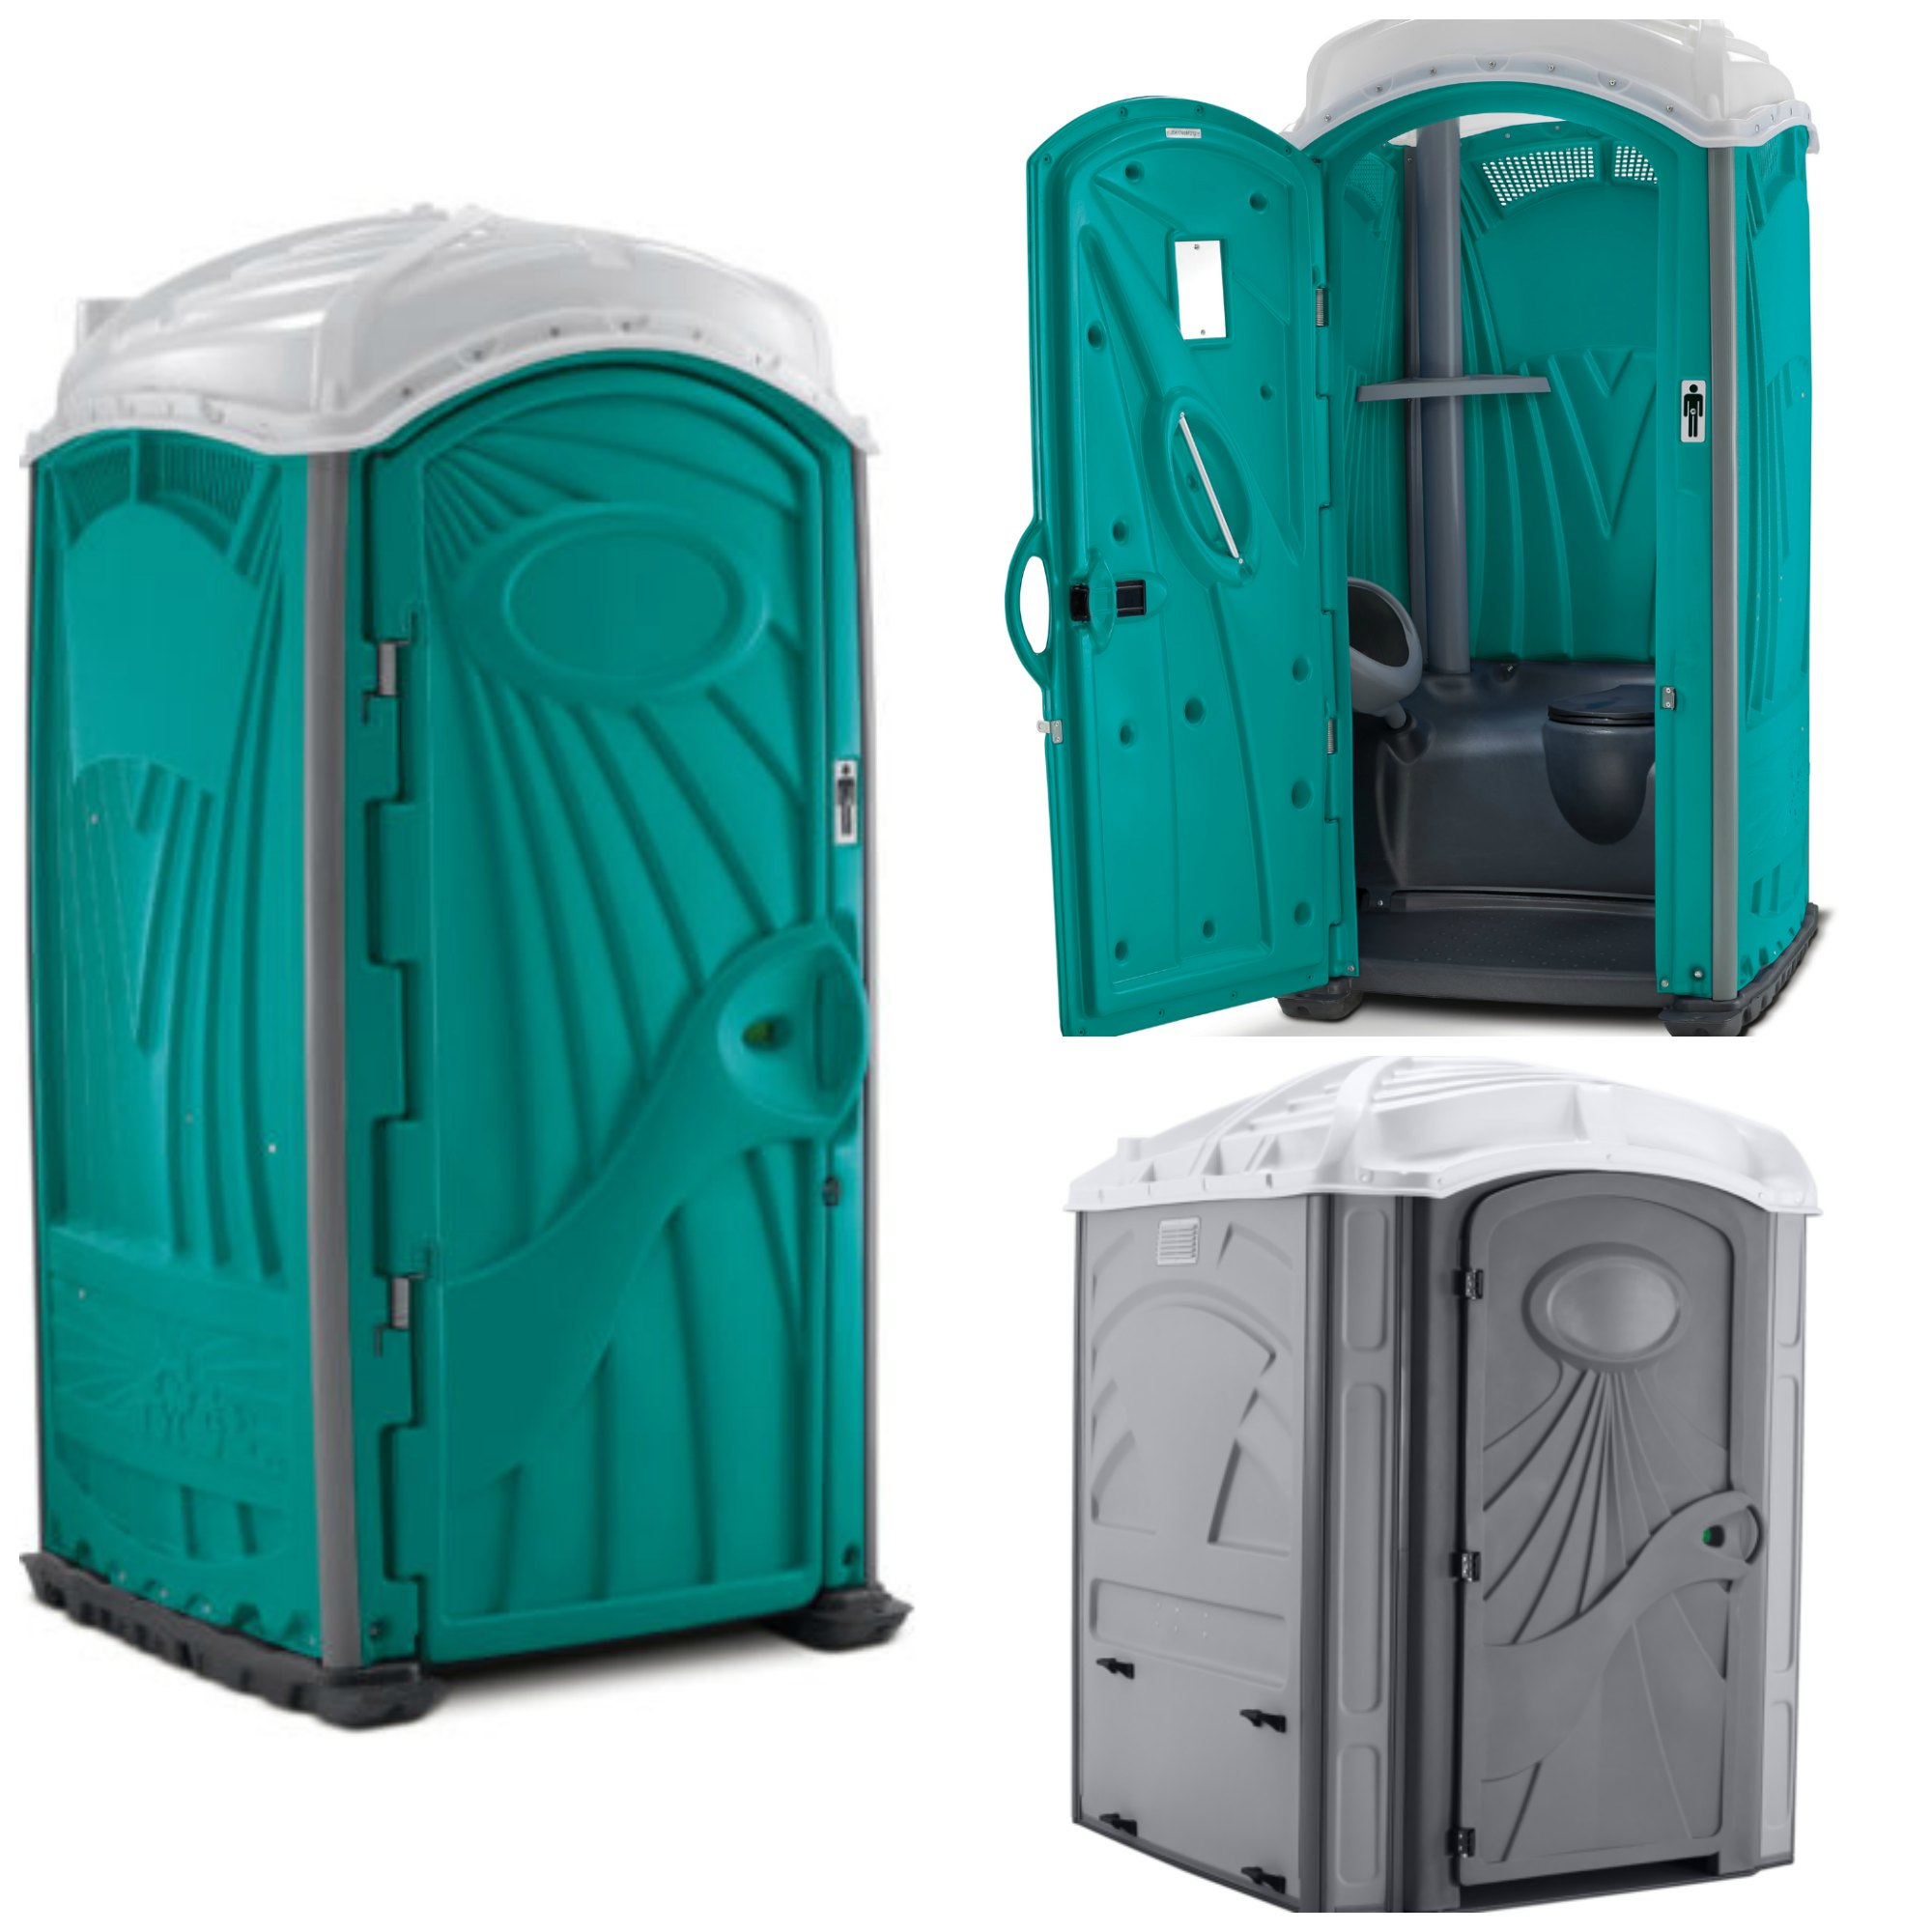 Portable toilet collage